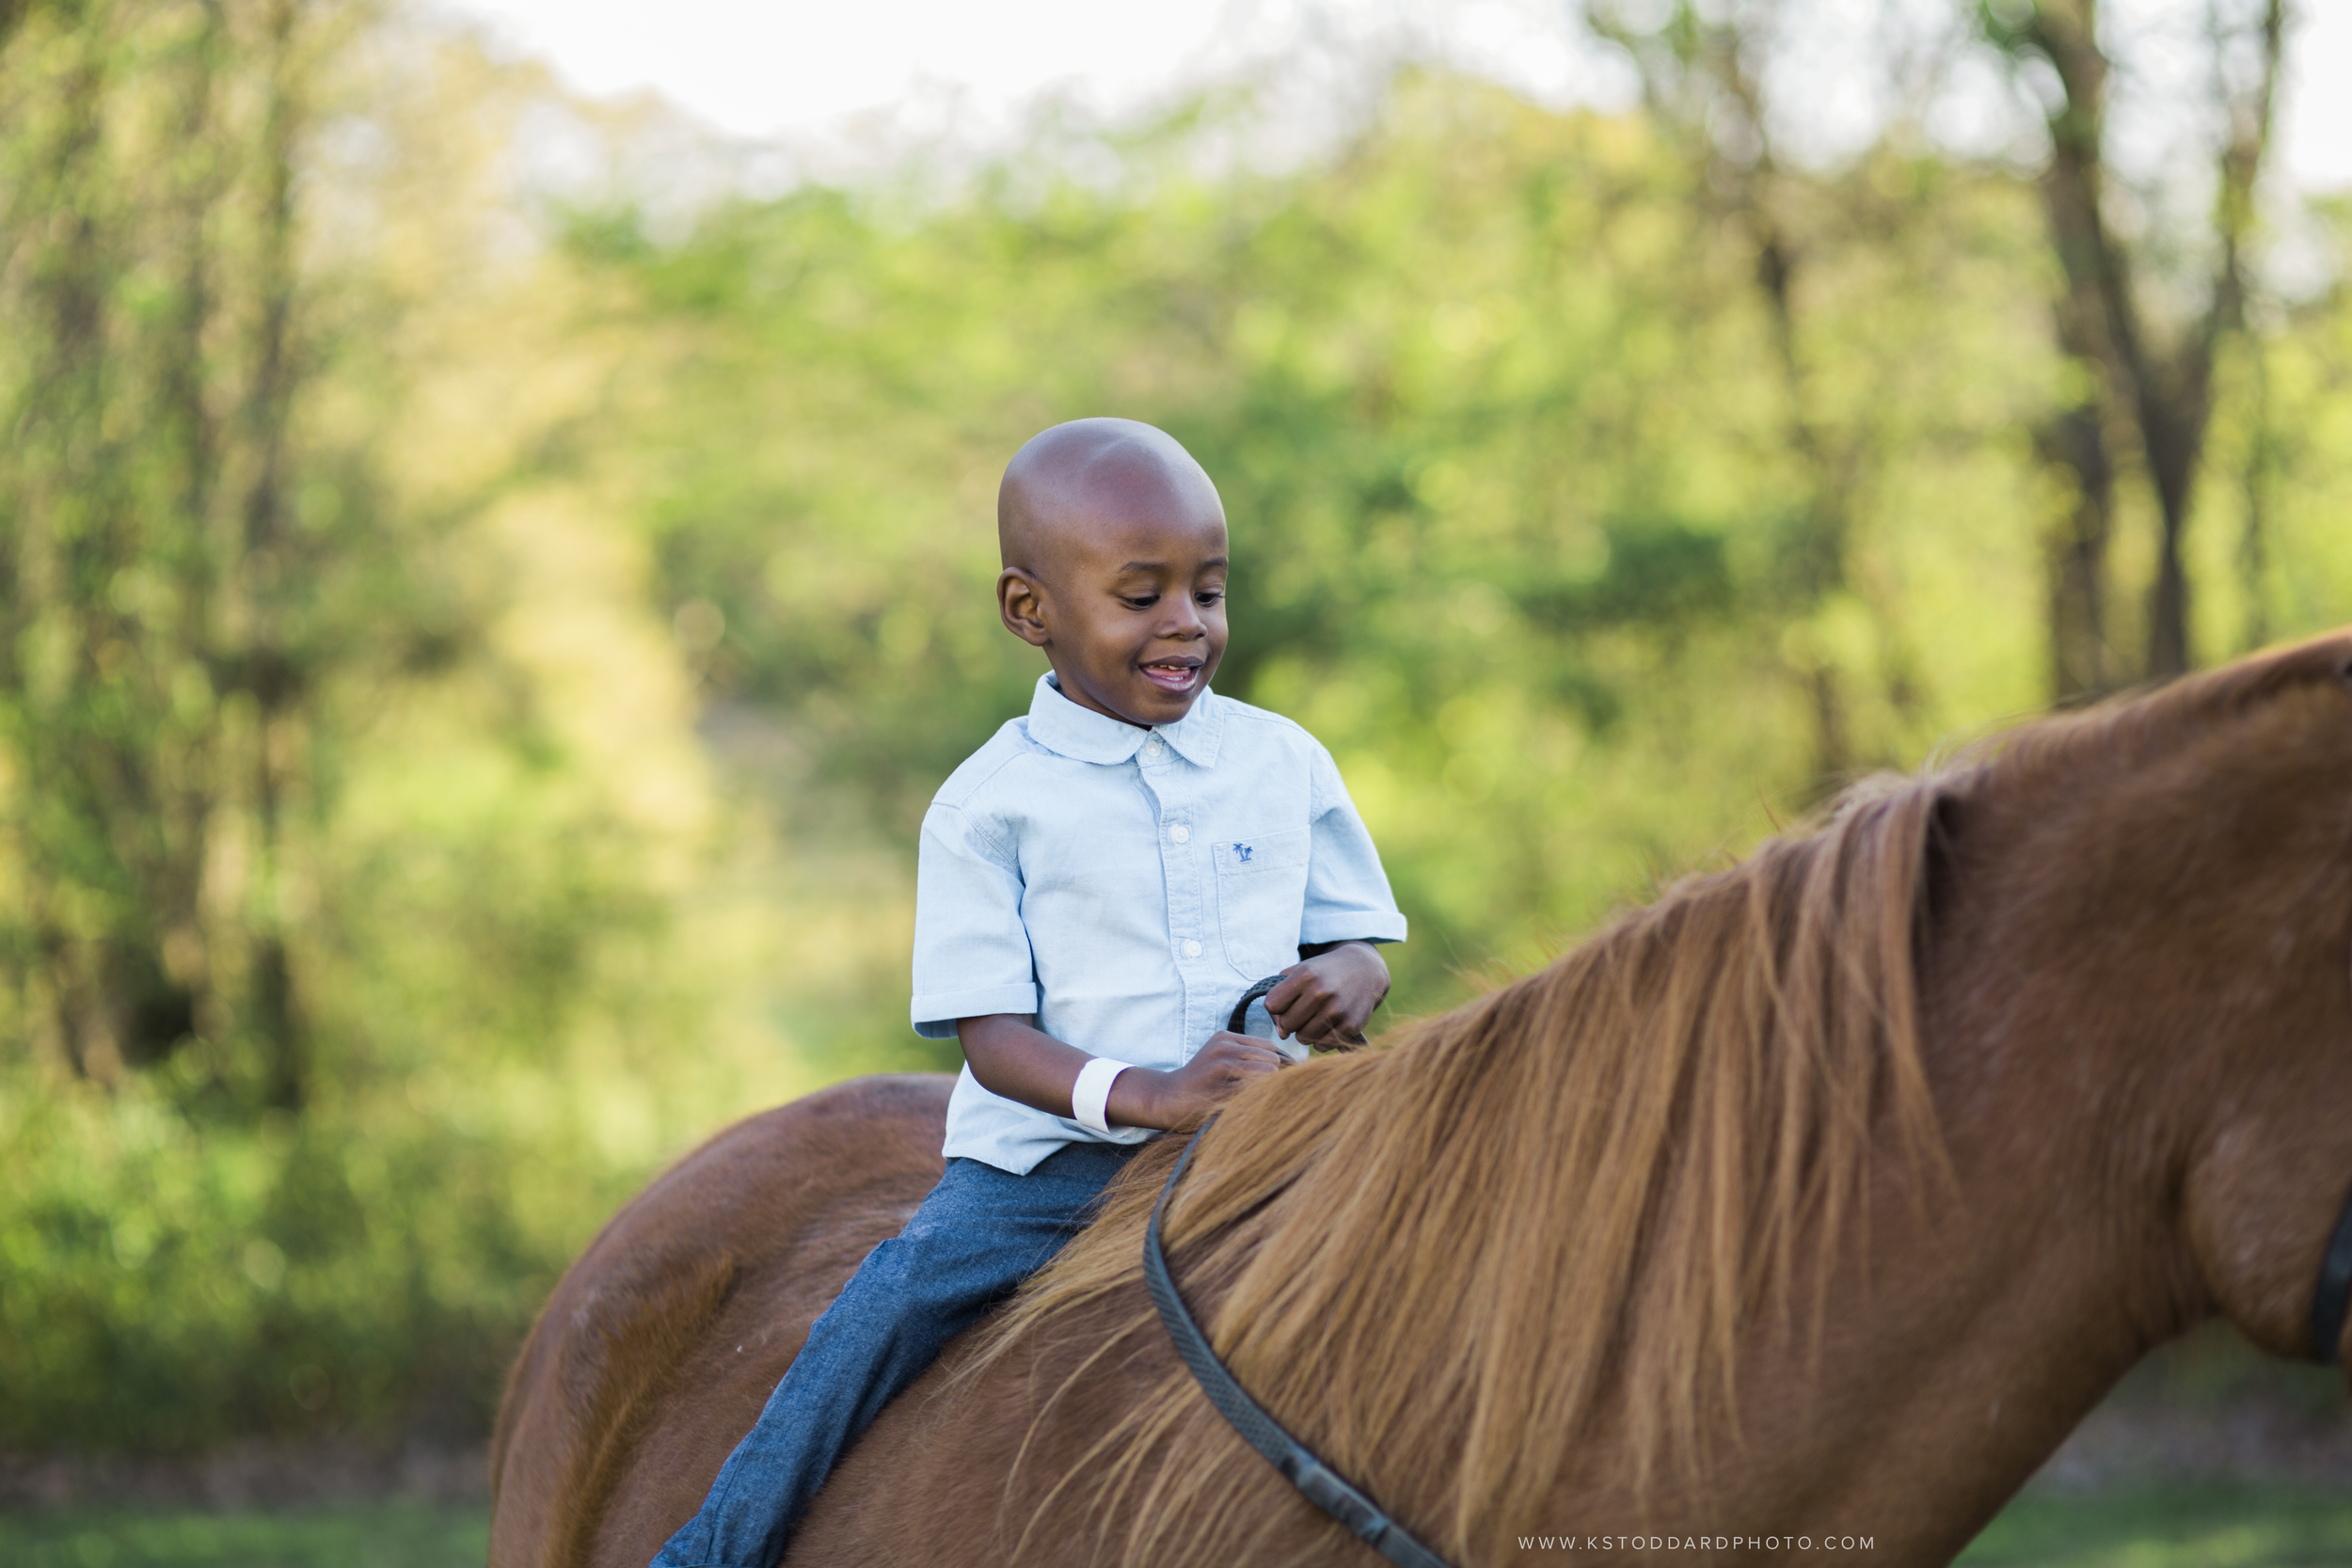 K'meil and Family - St. Jude Children's Research Hospital - Memphis - K. Stoddard Photography 009.jpg